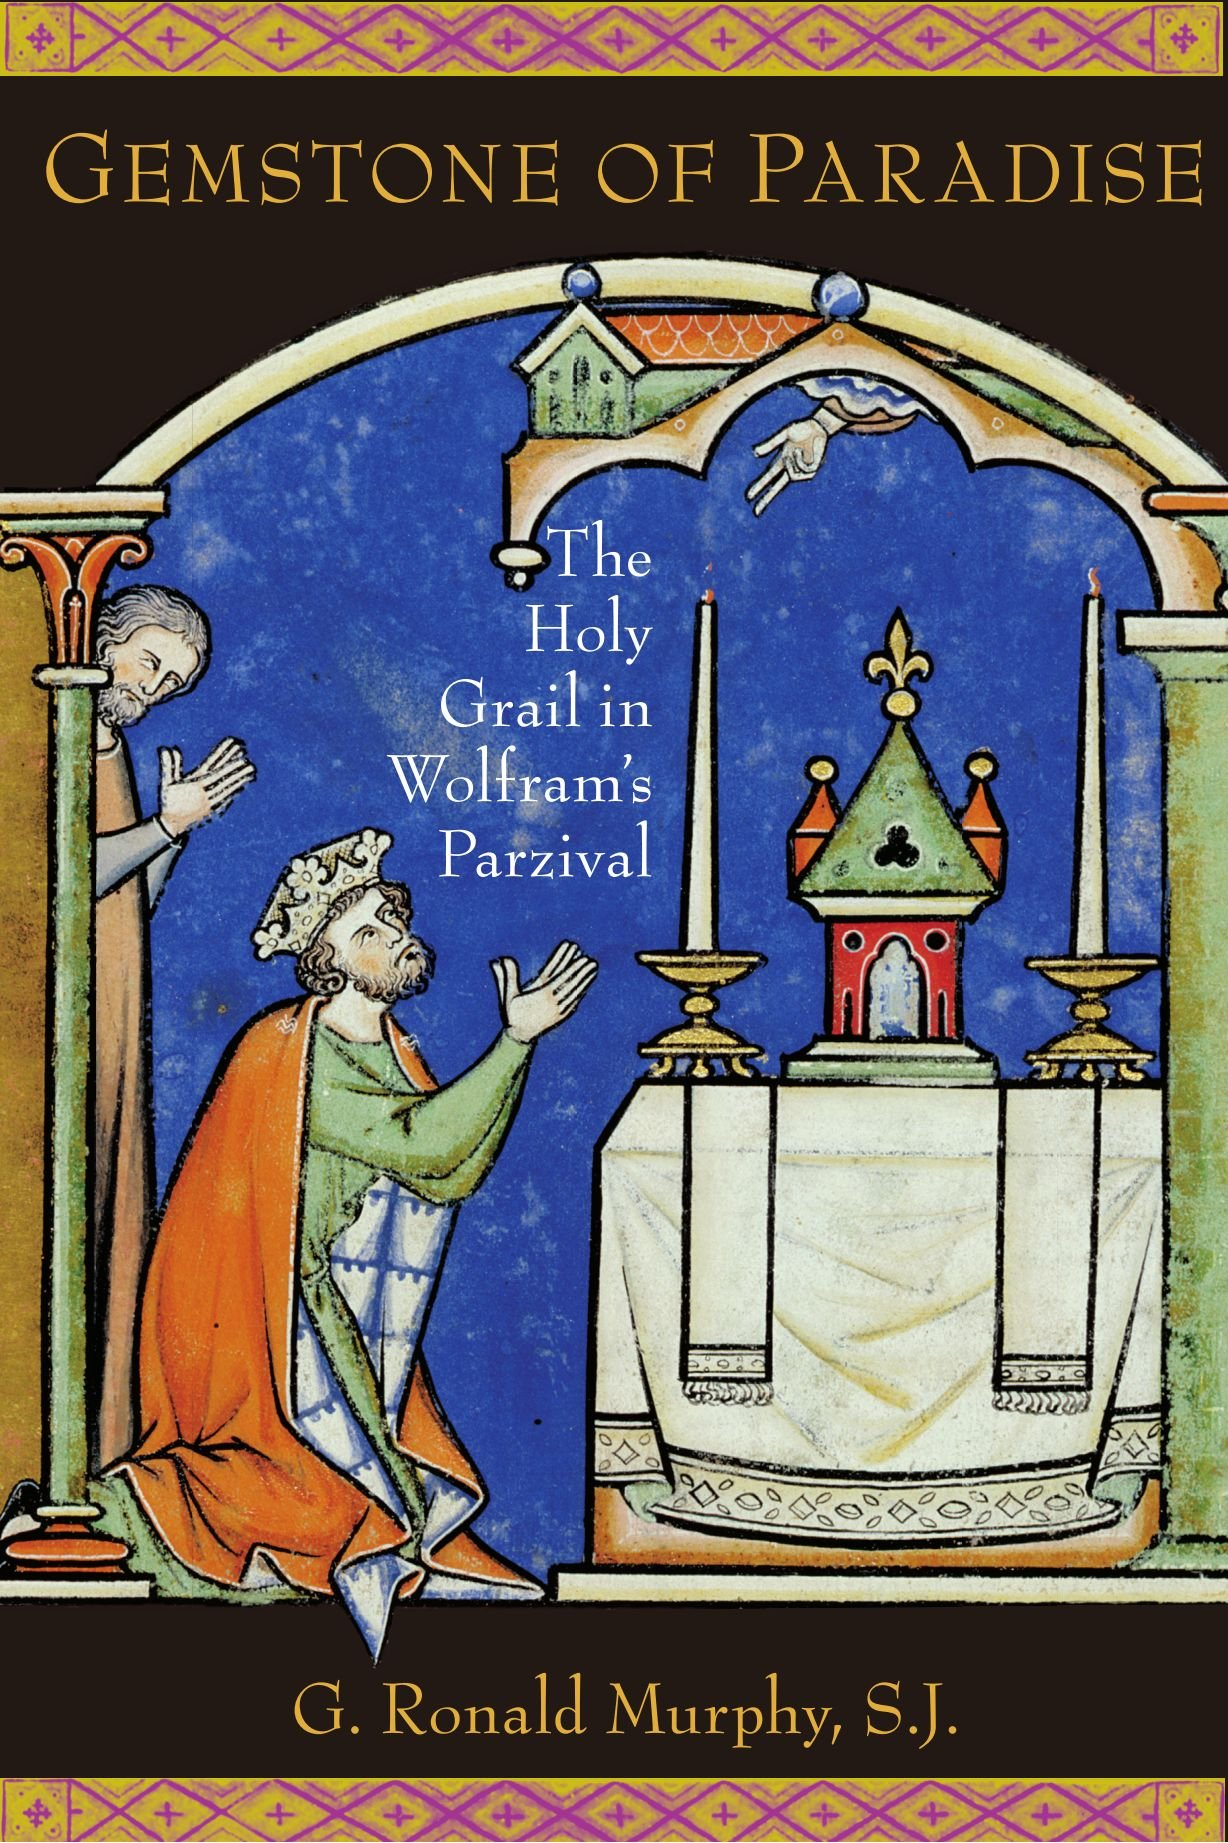 Gemstone of Paradise: The Holy Grail in Wolfram's Parzival by Oxford University Press